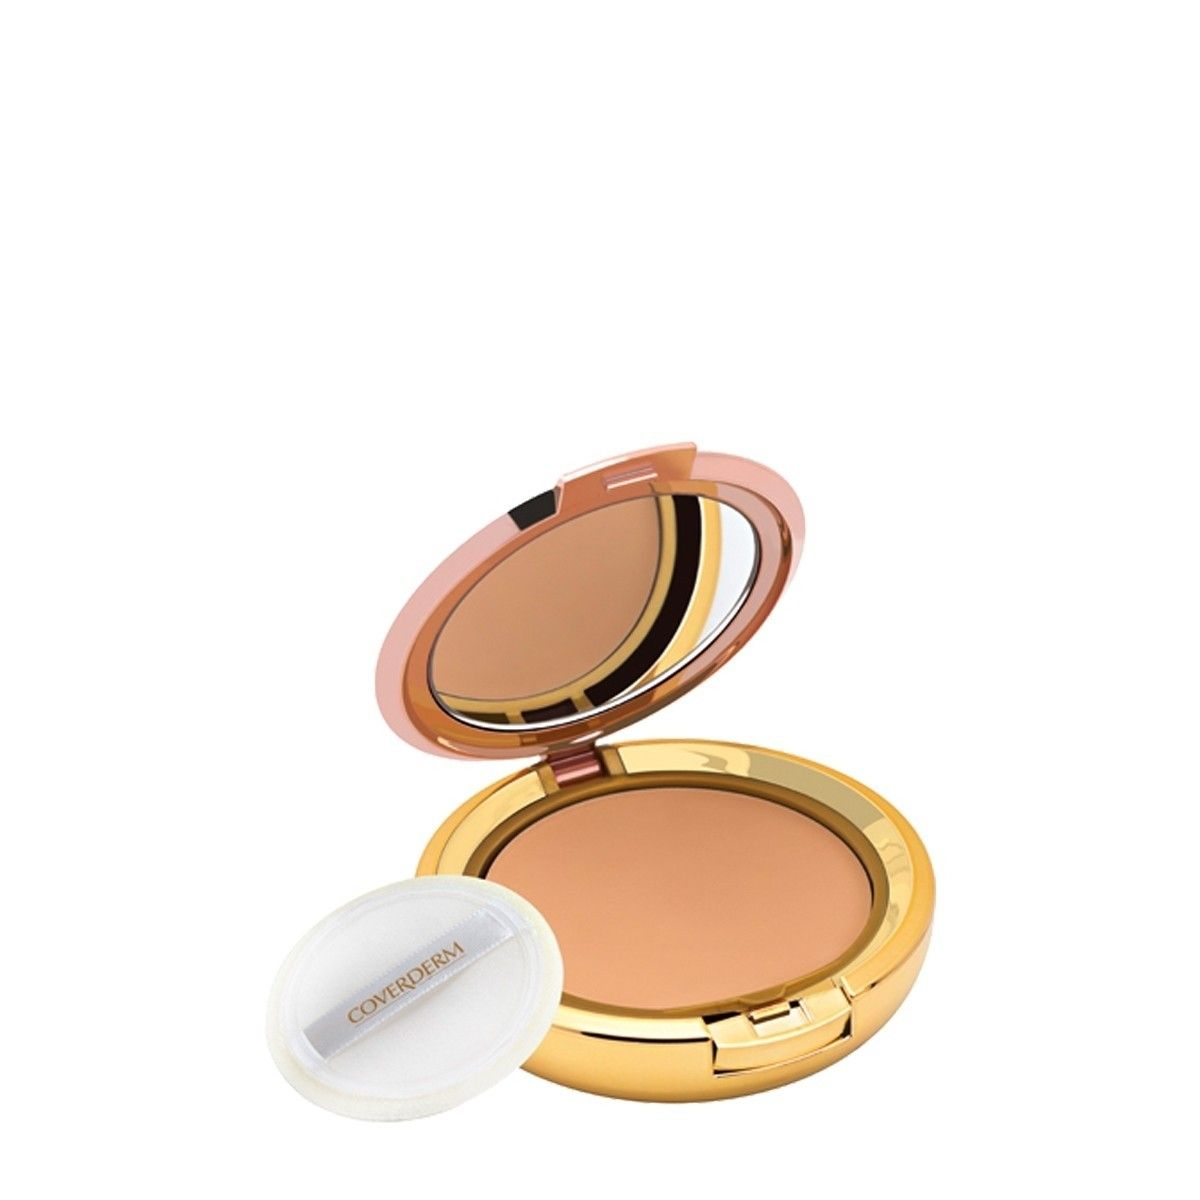 Afbeelding van Coverderm Compact Powder Color Normal 3 Poeder Make up